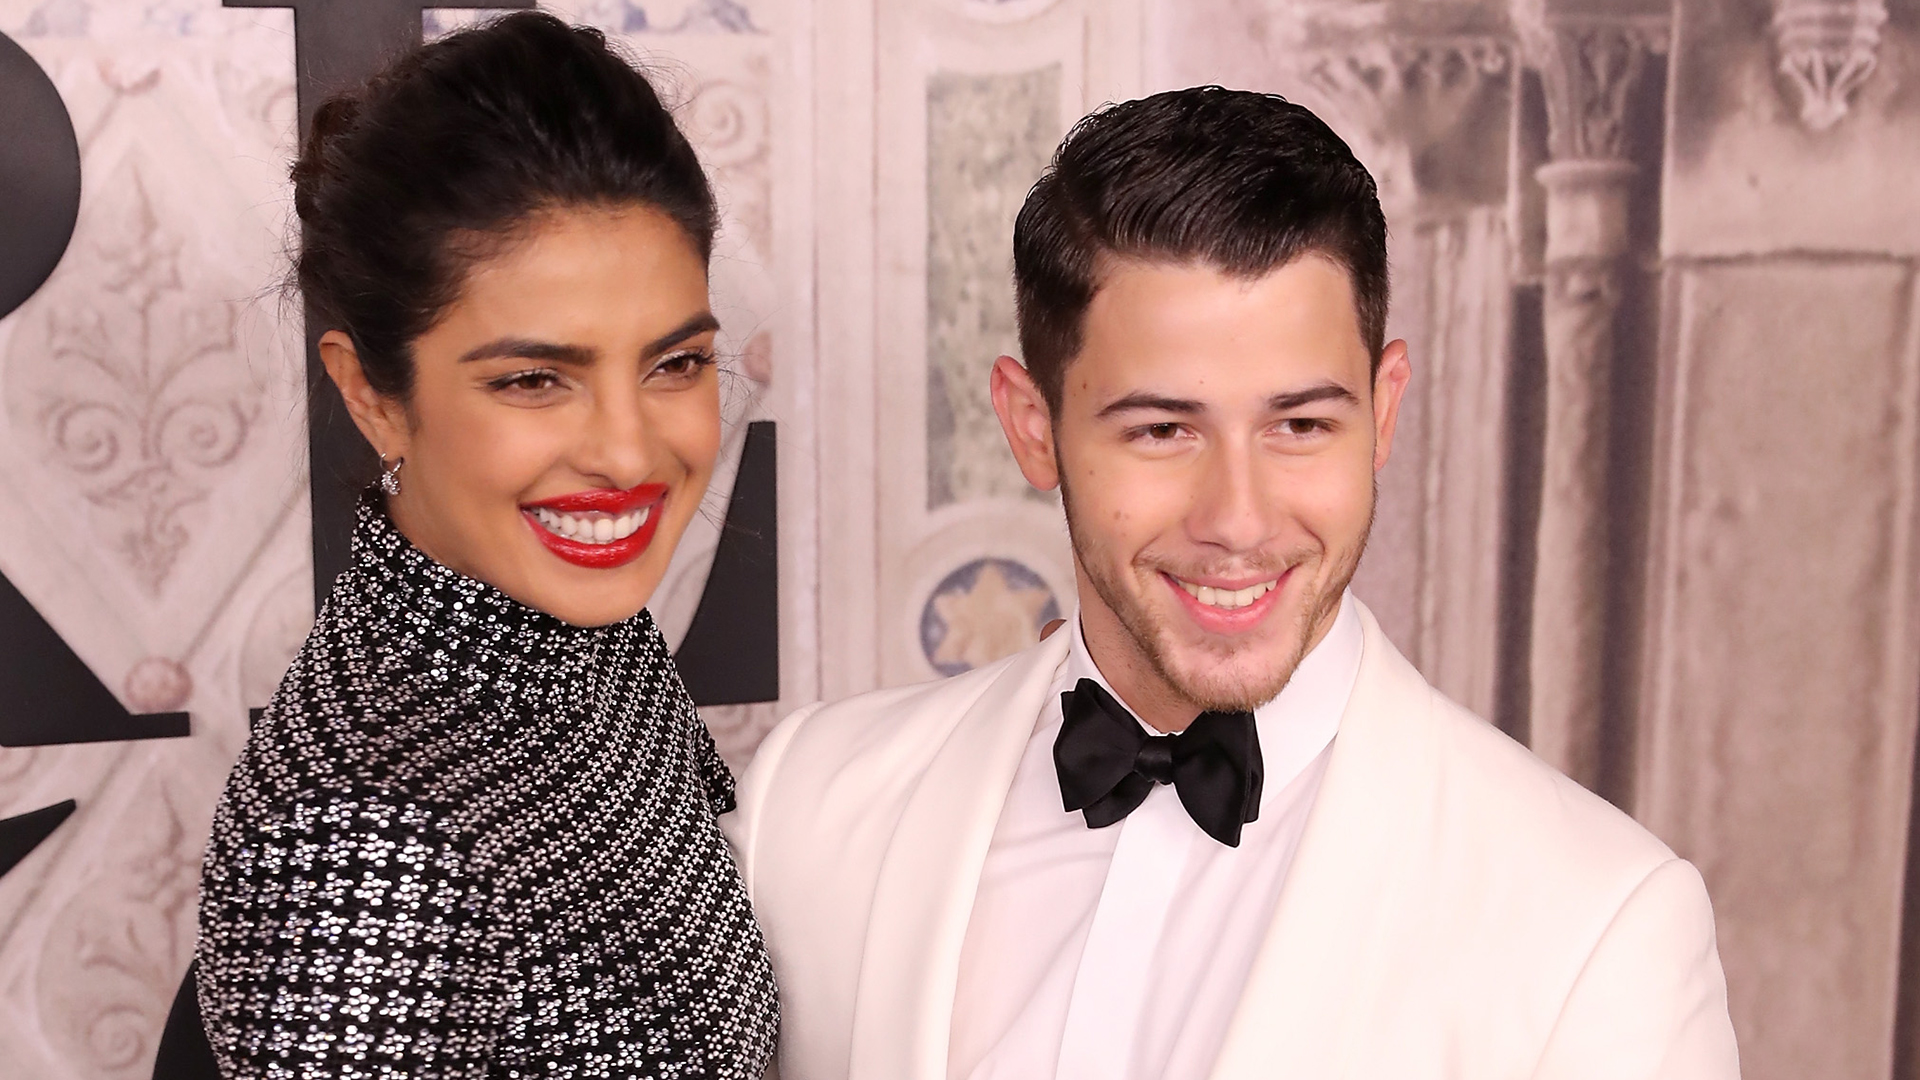 Priyanka Chopra Reveals When She and Nick Jonas Will Start a Family